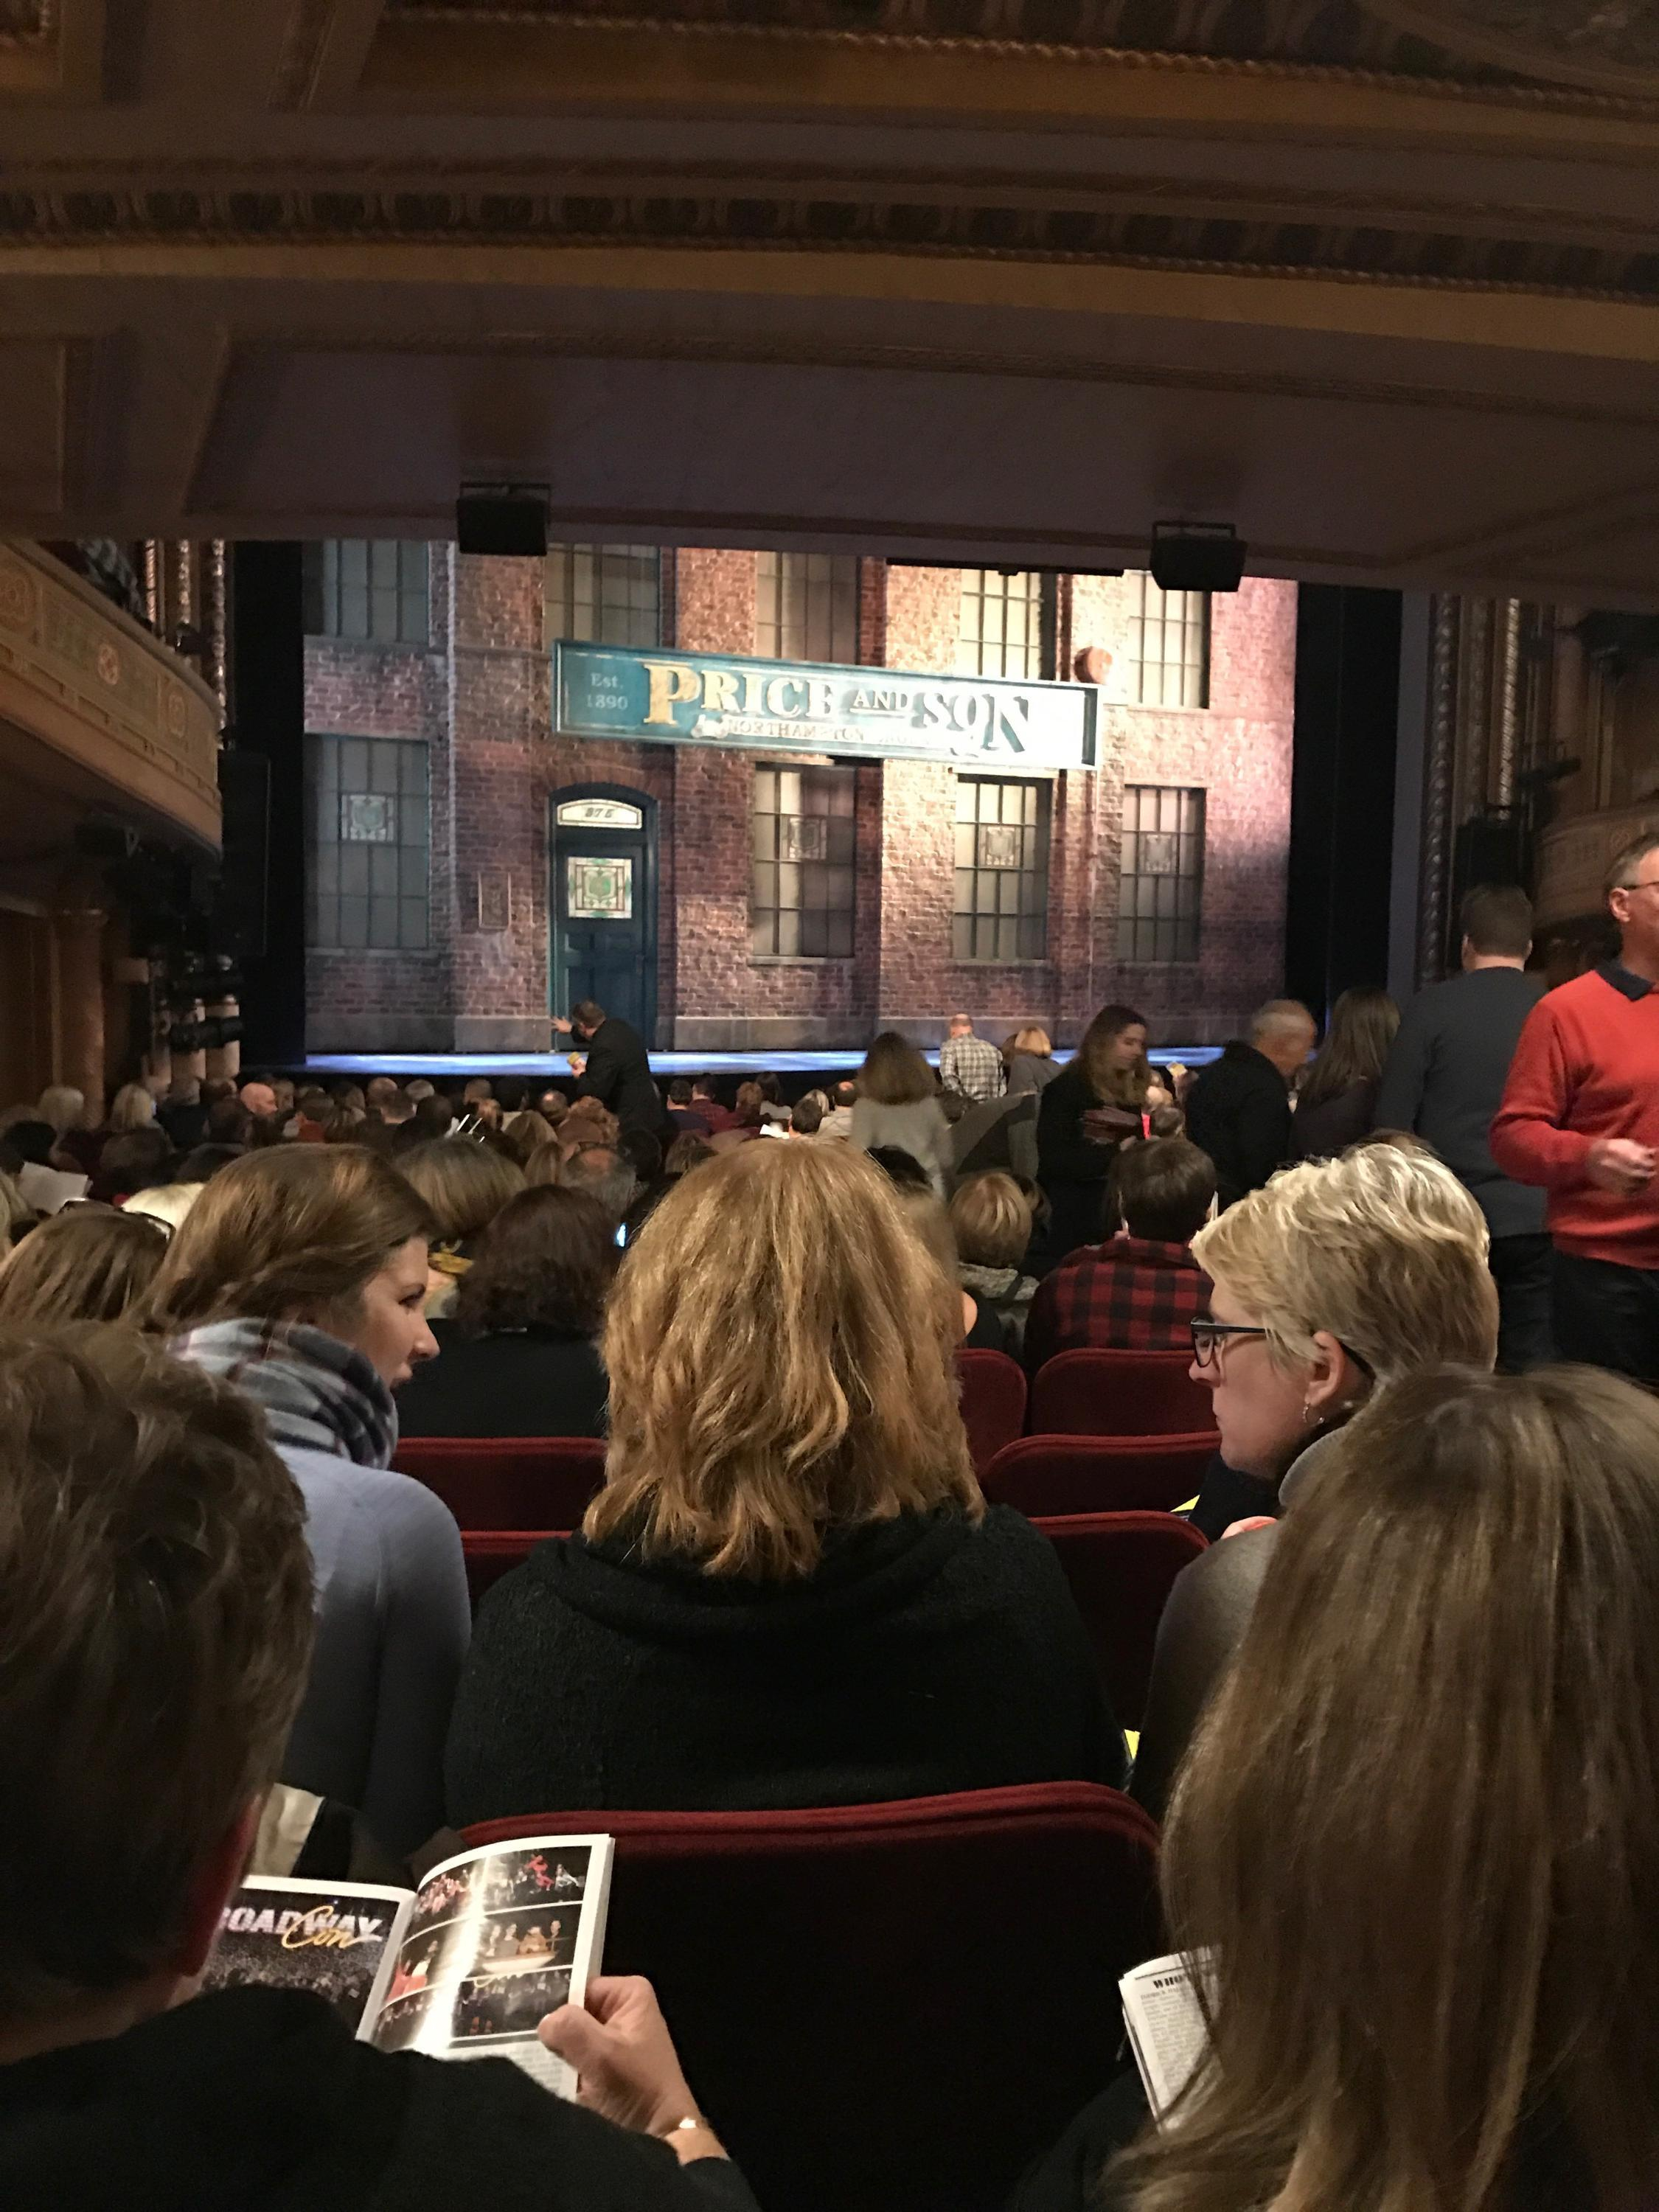 Al Hirschfeld Theatre Section ORCHL Row T Seat 9